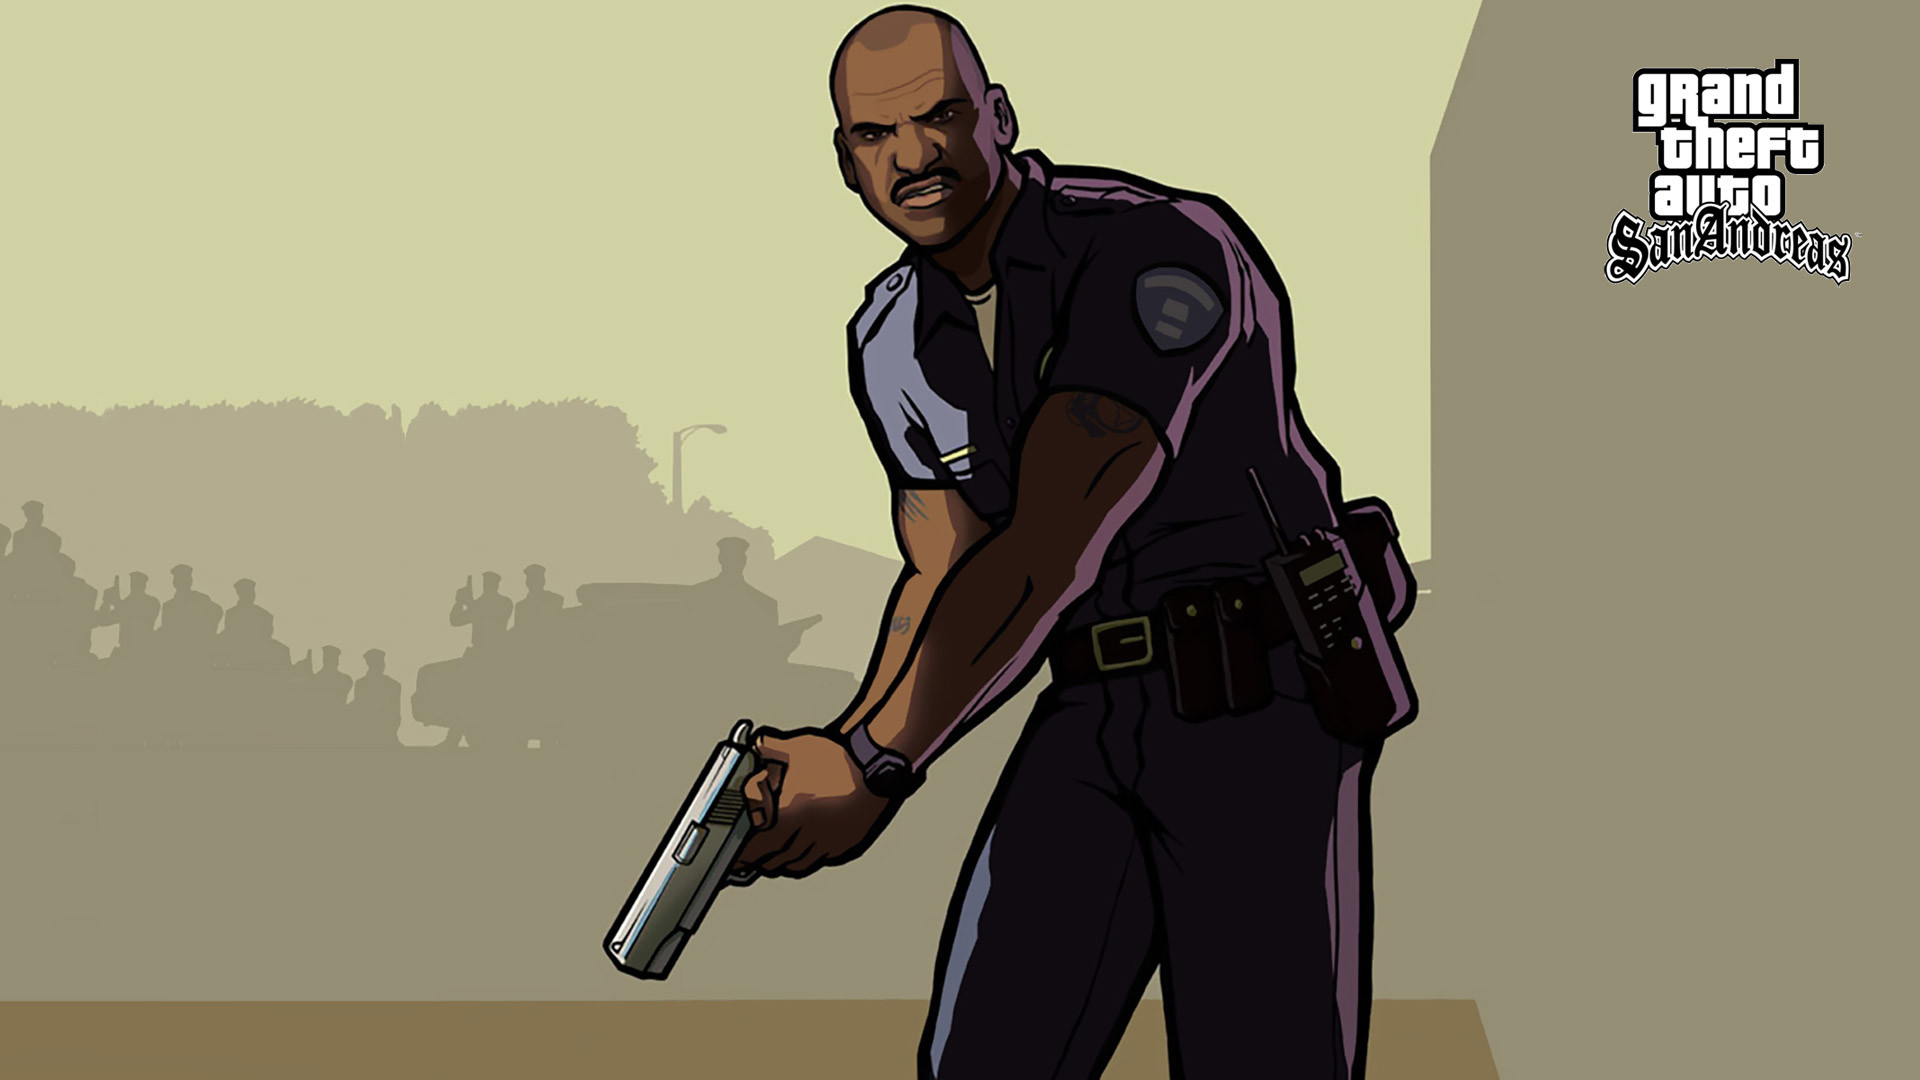 Gta San Andreas Wallpapers 62 Pictures